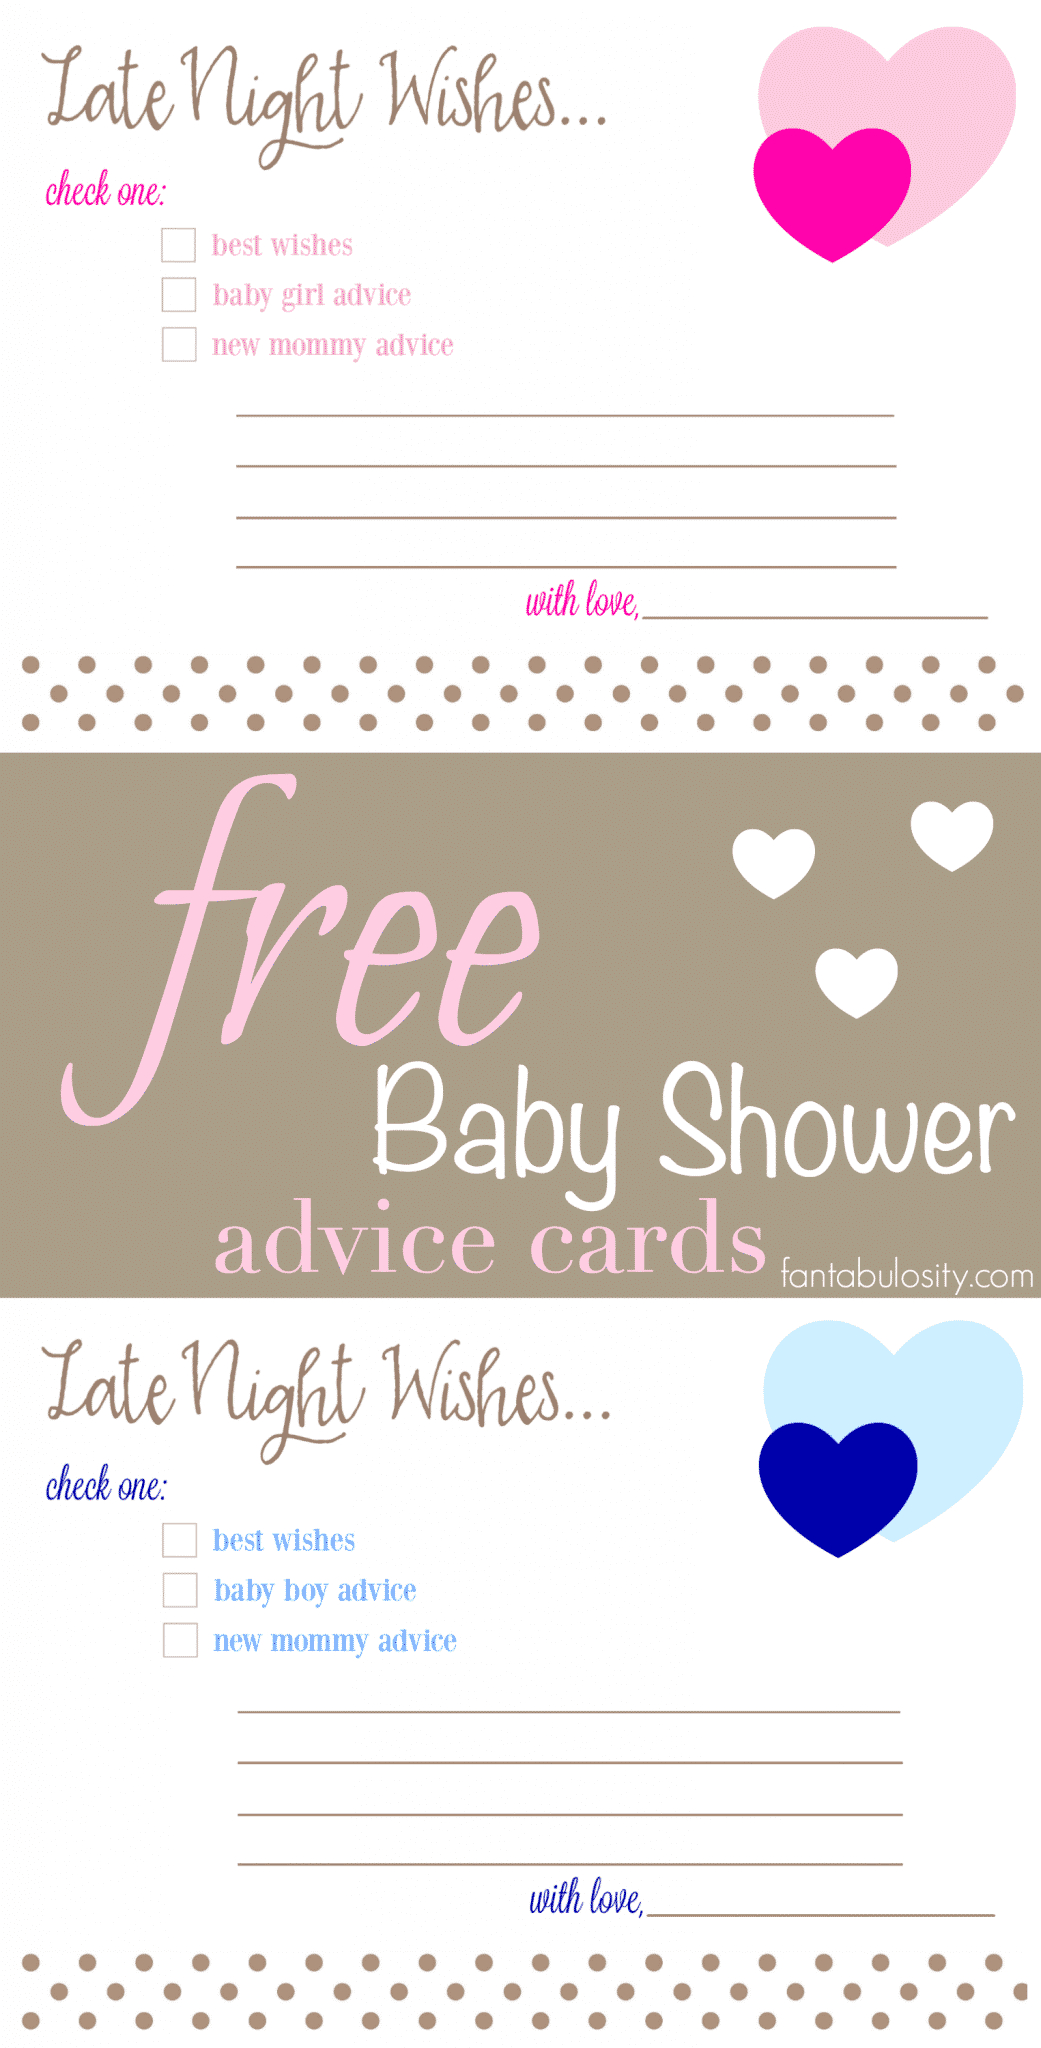 Free Printable Baby Shower Advice & Best Wishes Cards - Fantabulosity - Free Mommy Advice Cards Printable